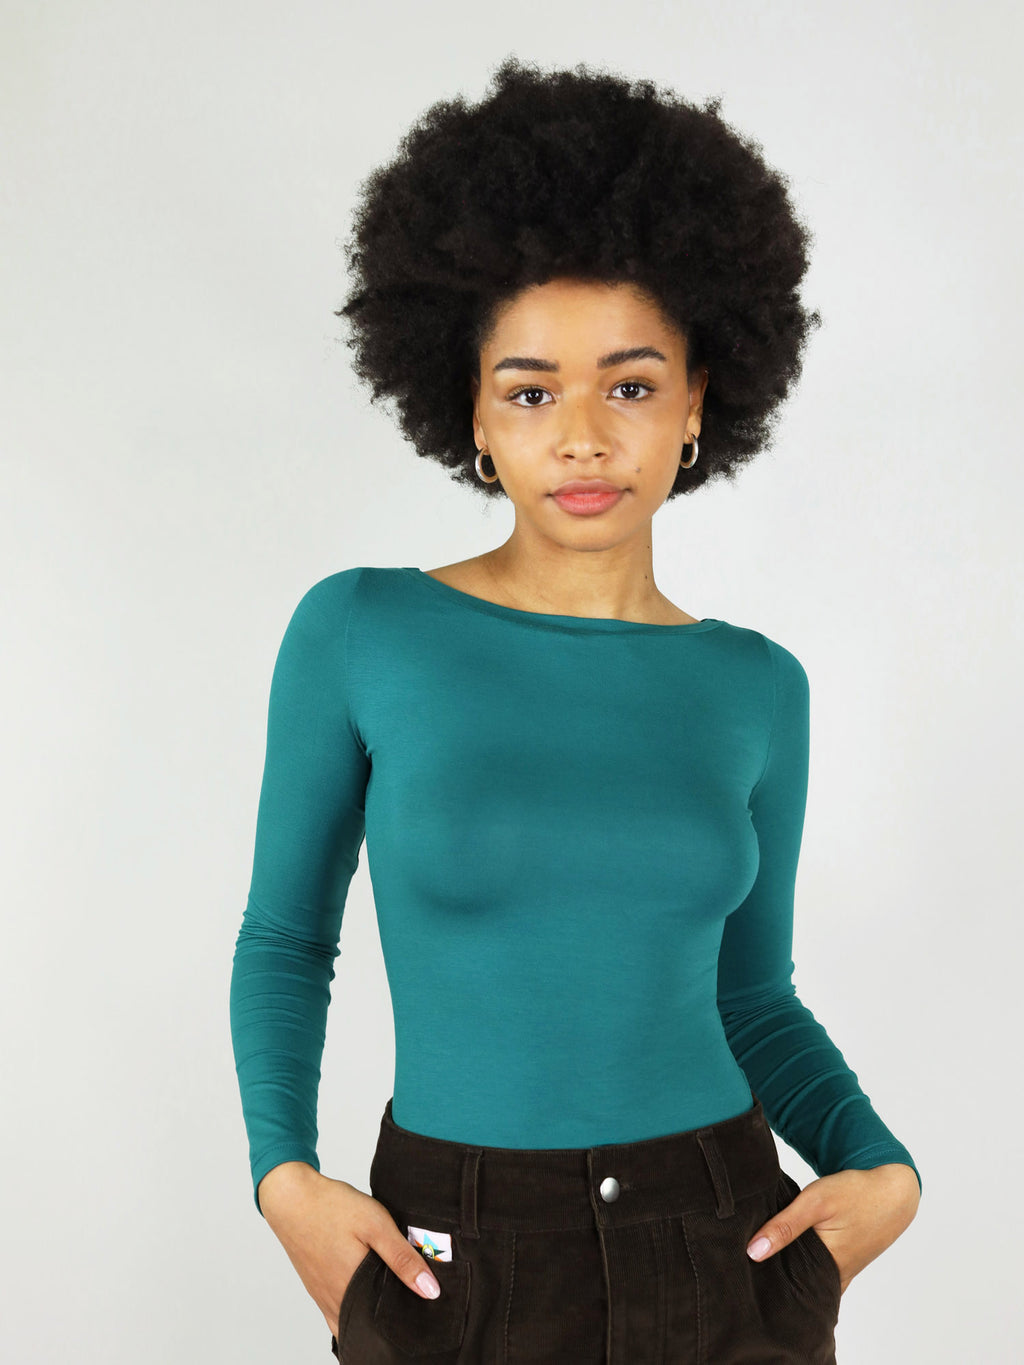 Twisted blouse in deep turquoise has fitted silhouette, long sleeves, and boat neck. 100% sustainable, made from 100% up-cycled deadstock.